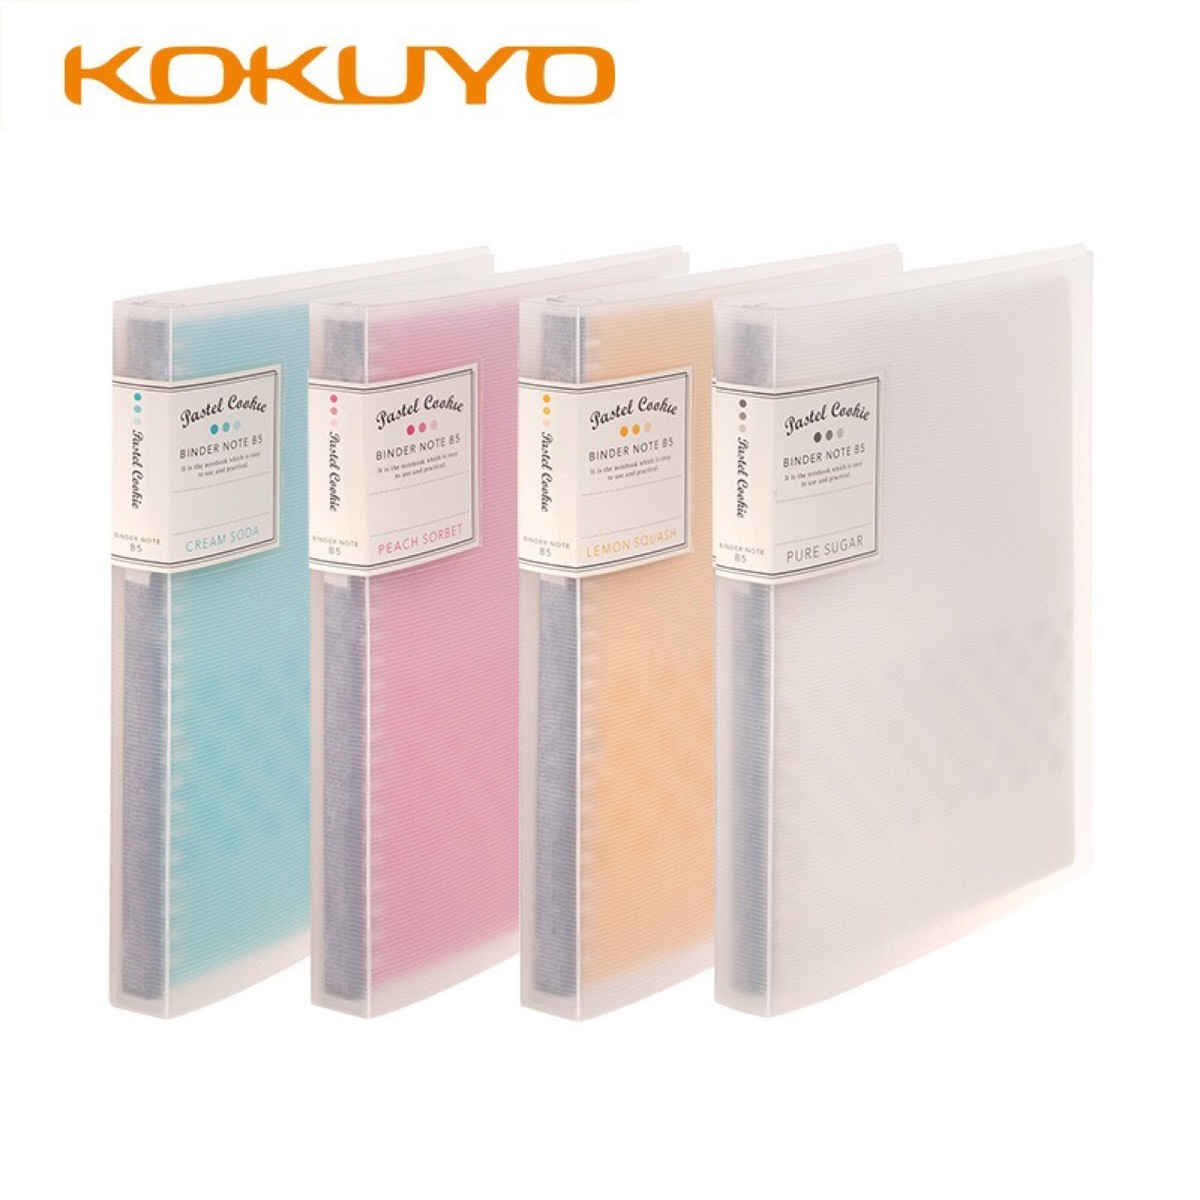 KOKUYO A5 <font><b>B5</b></font> Removable Loose Leaf <font><b>Notebook</b></font> Refill Spiral Binder Planner Inner Page Inside Paper Dairy Weekly Monthly Plan <font><b>Line</b></font> image